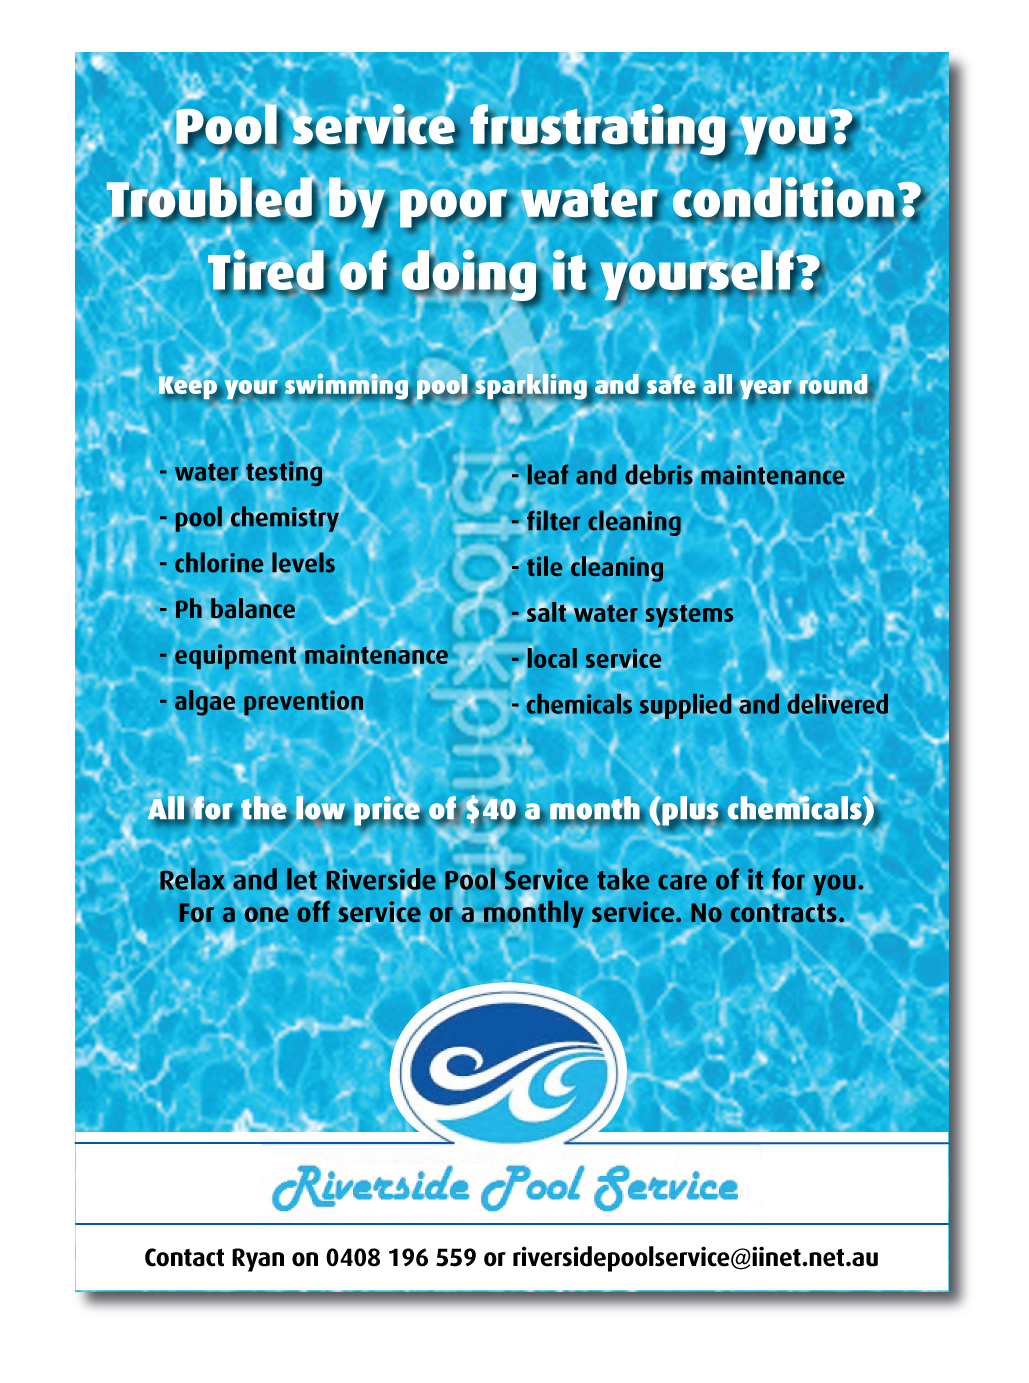 38 Serious Modern Pool Service Flyer Designs For A Pool Service Business In Australia